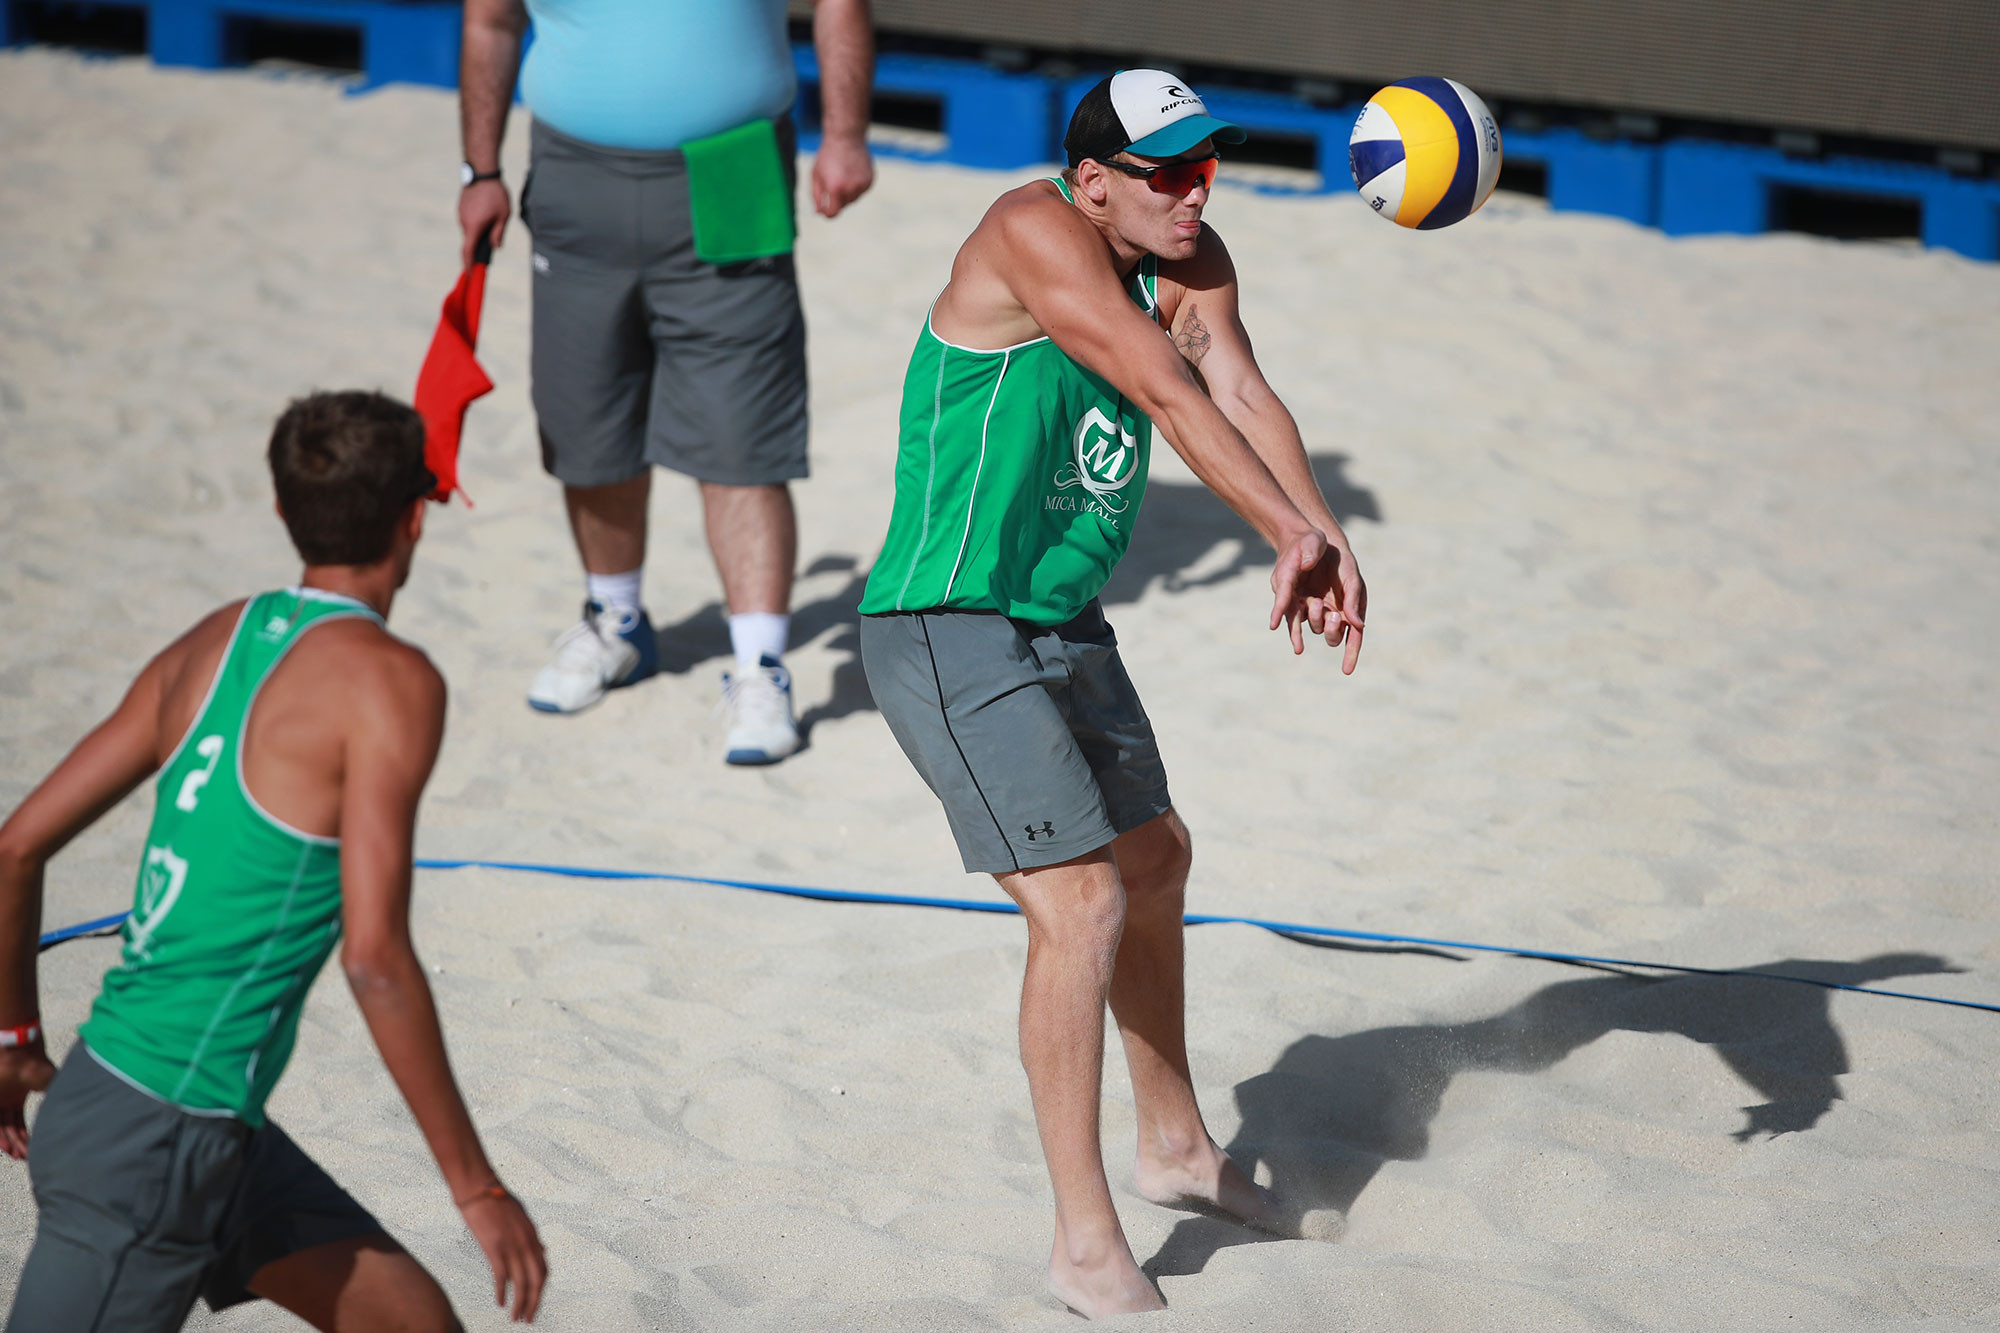 Konstantin Semenov has not featured at an FIVB event since the Rio 2016 Olympics ©FIVB